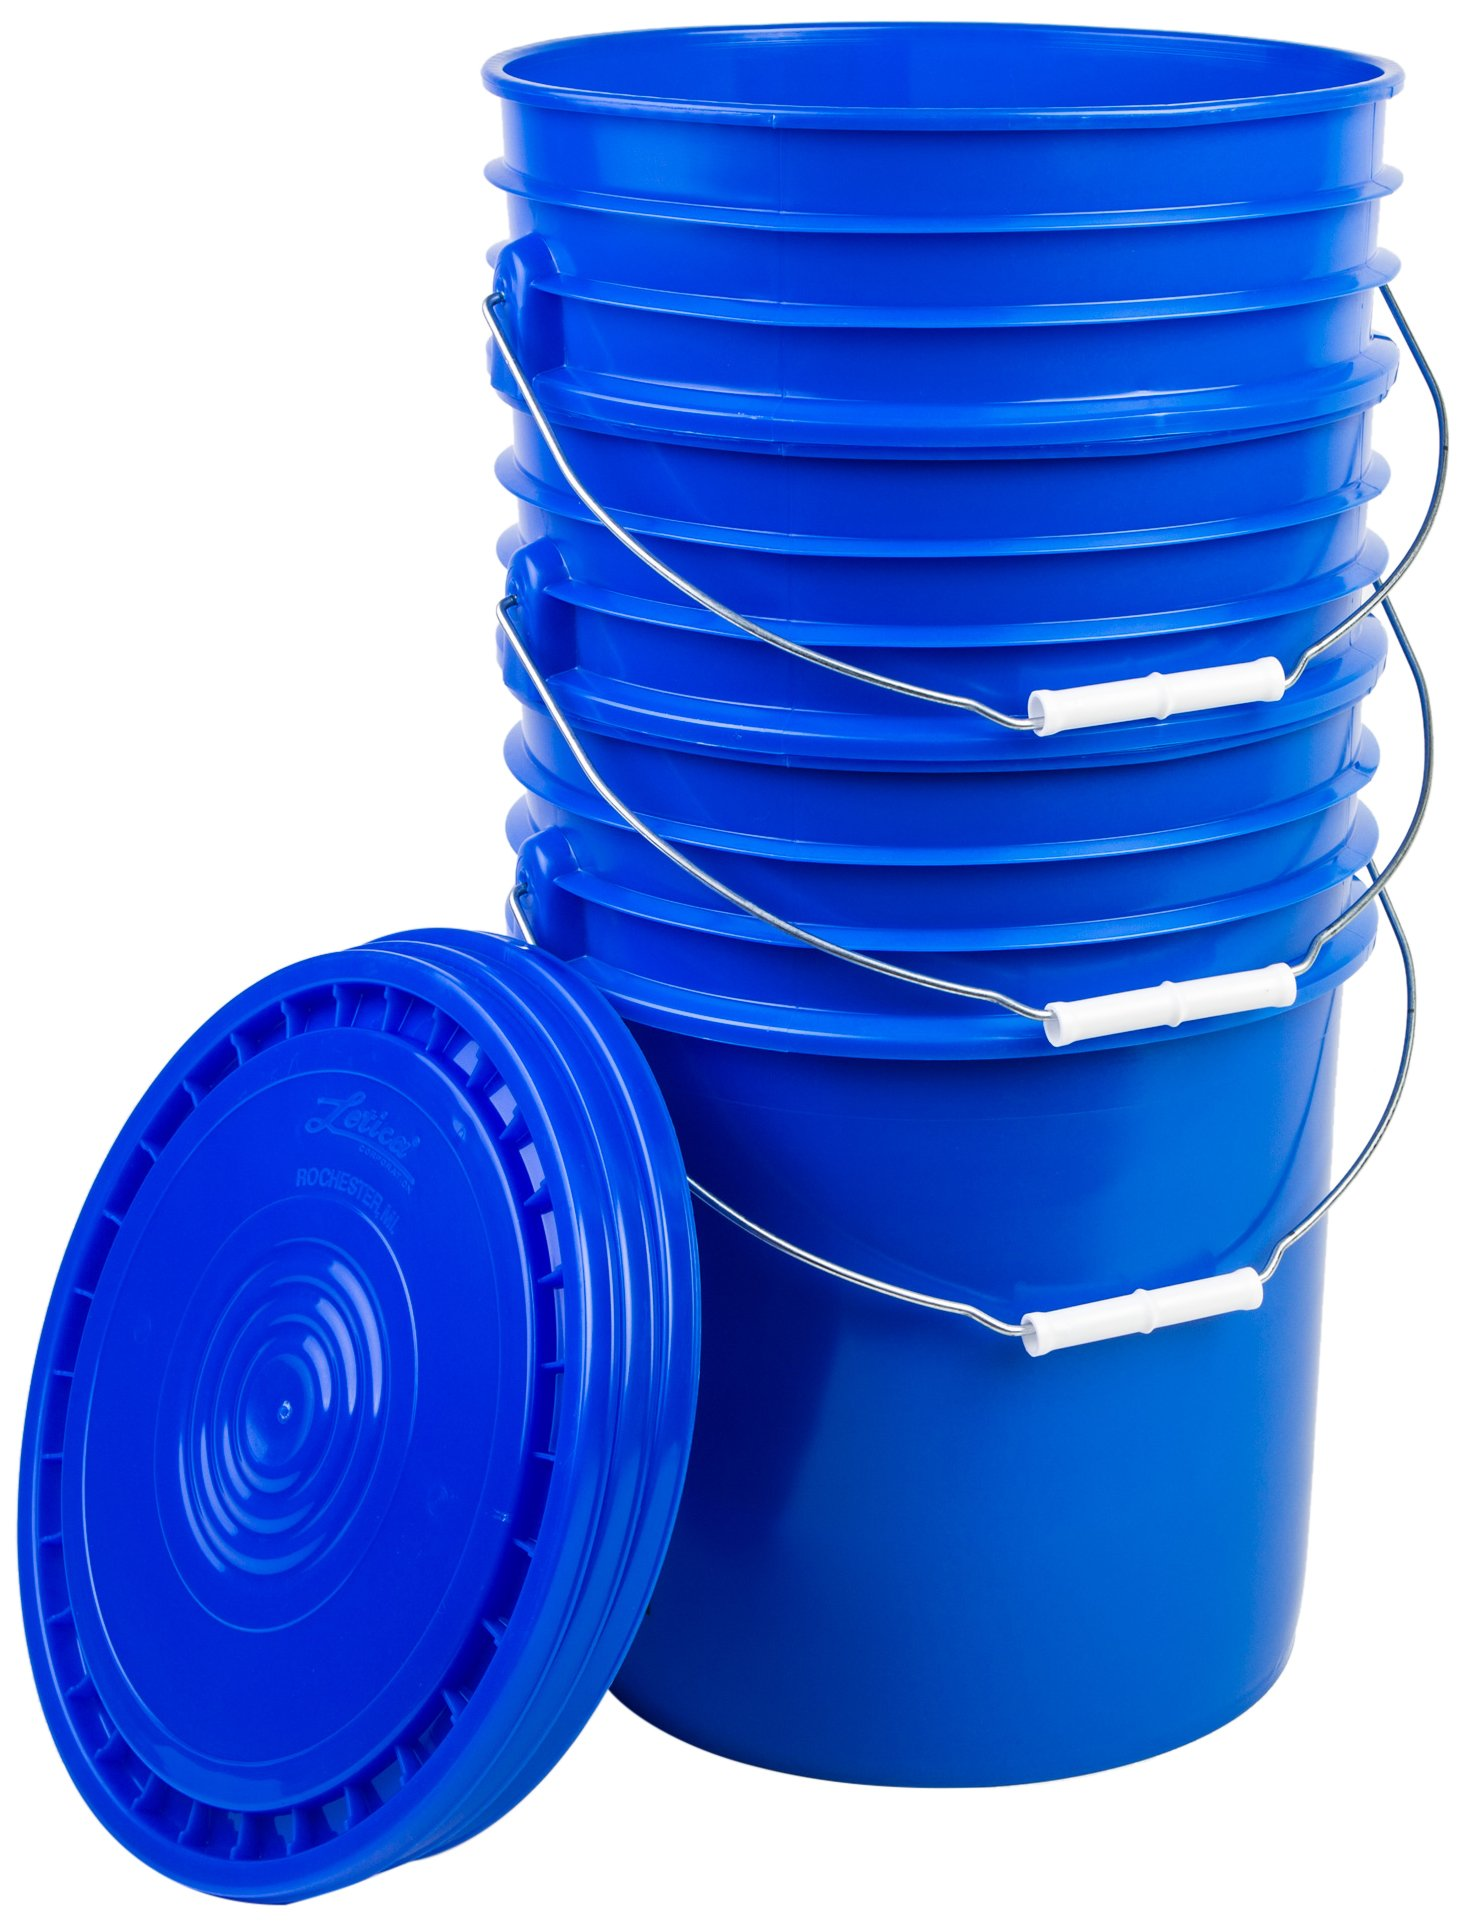 Hudson Exchange Premium 5 Gallon Bucket with Lid, HDPE, Blue, 3 Pack